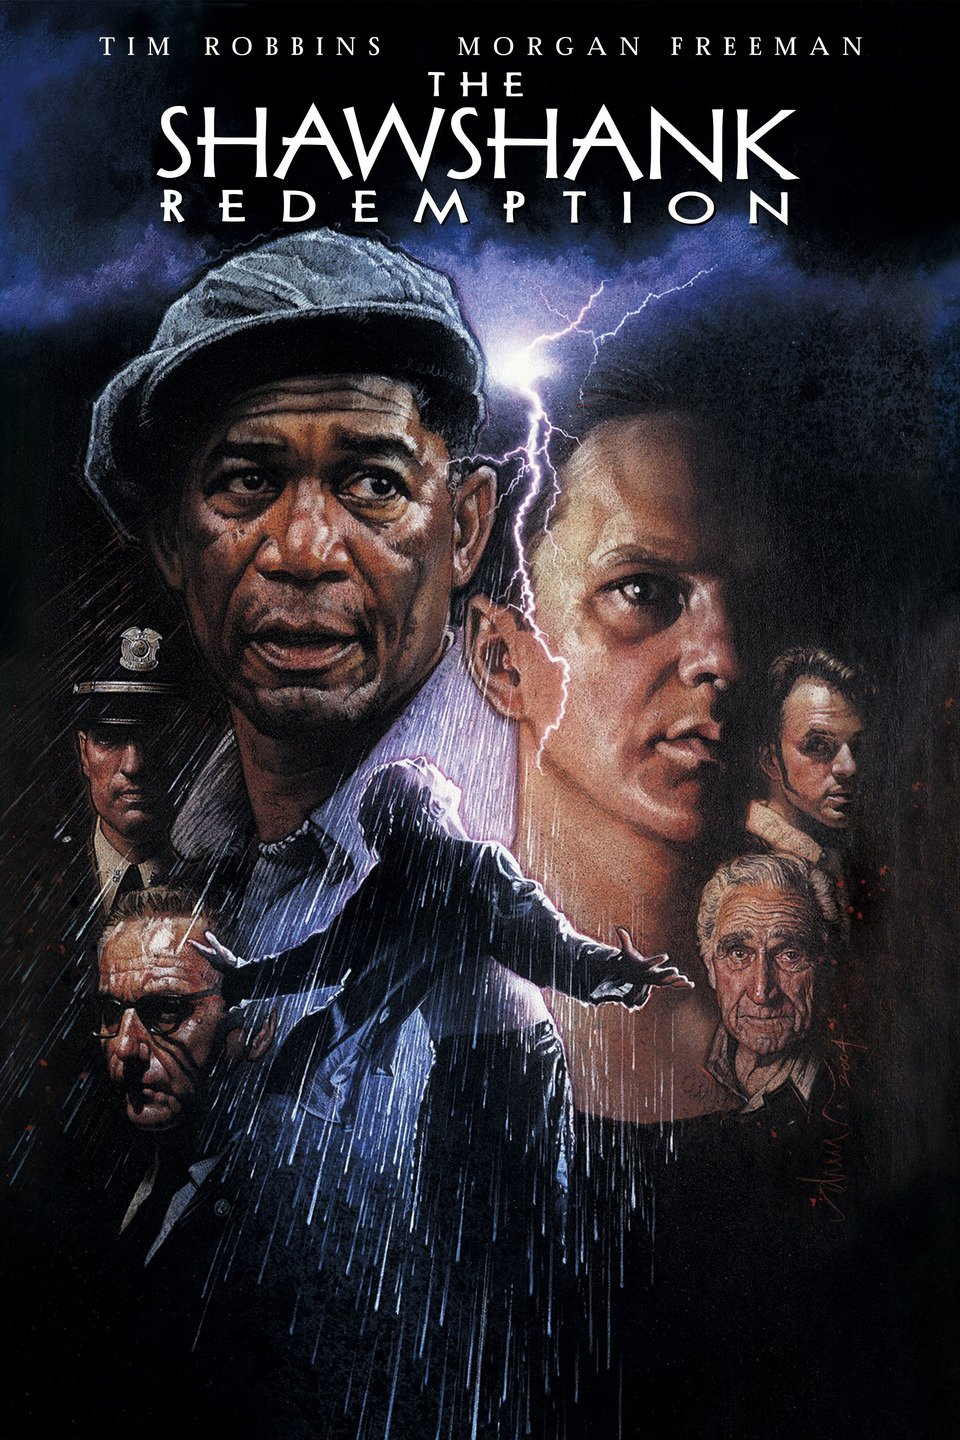 The Shawshank Redemption 1994